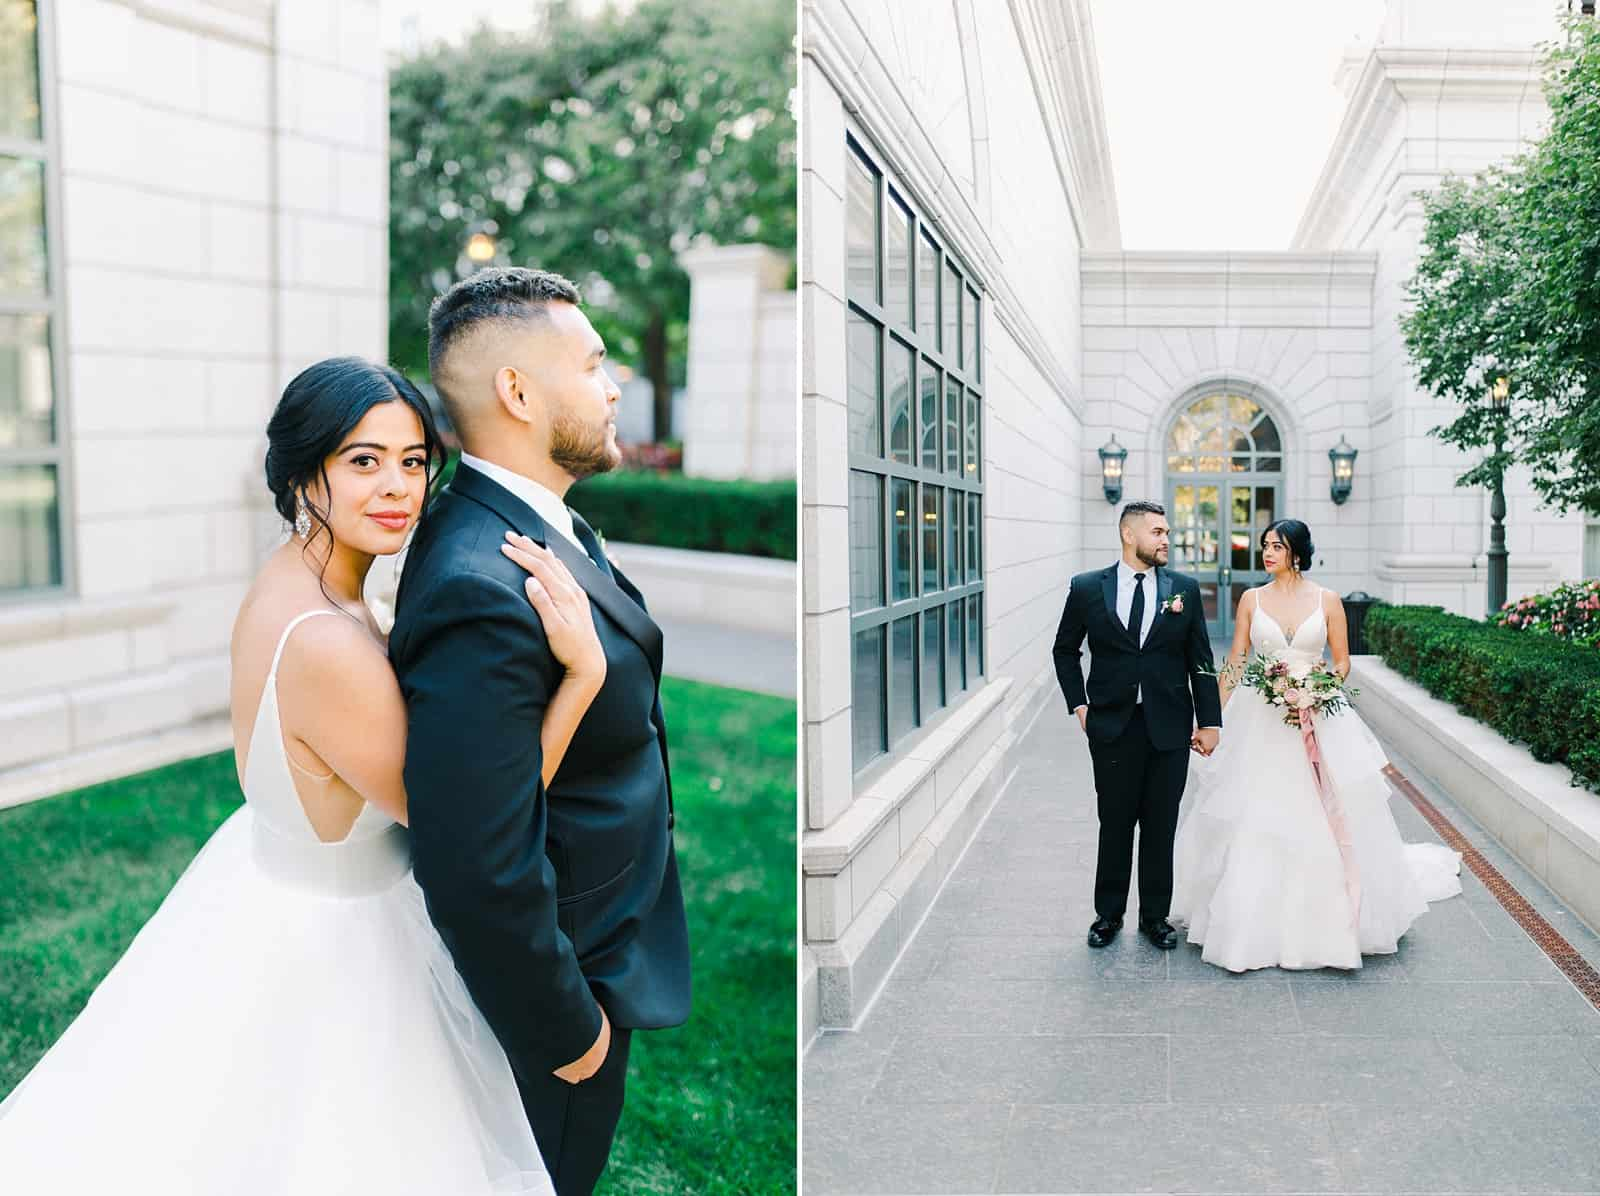 Bride and groom walking together inside the Grand America hotel courtyard